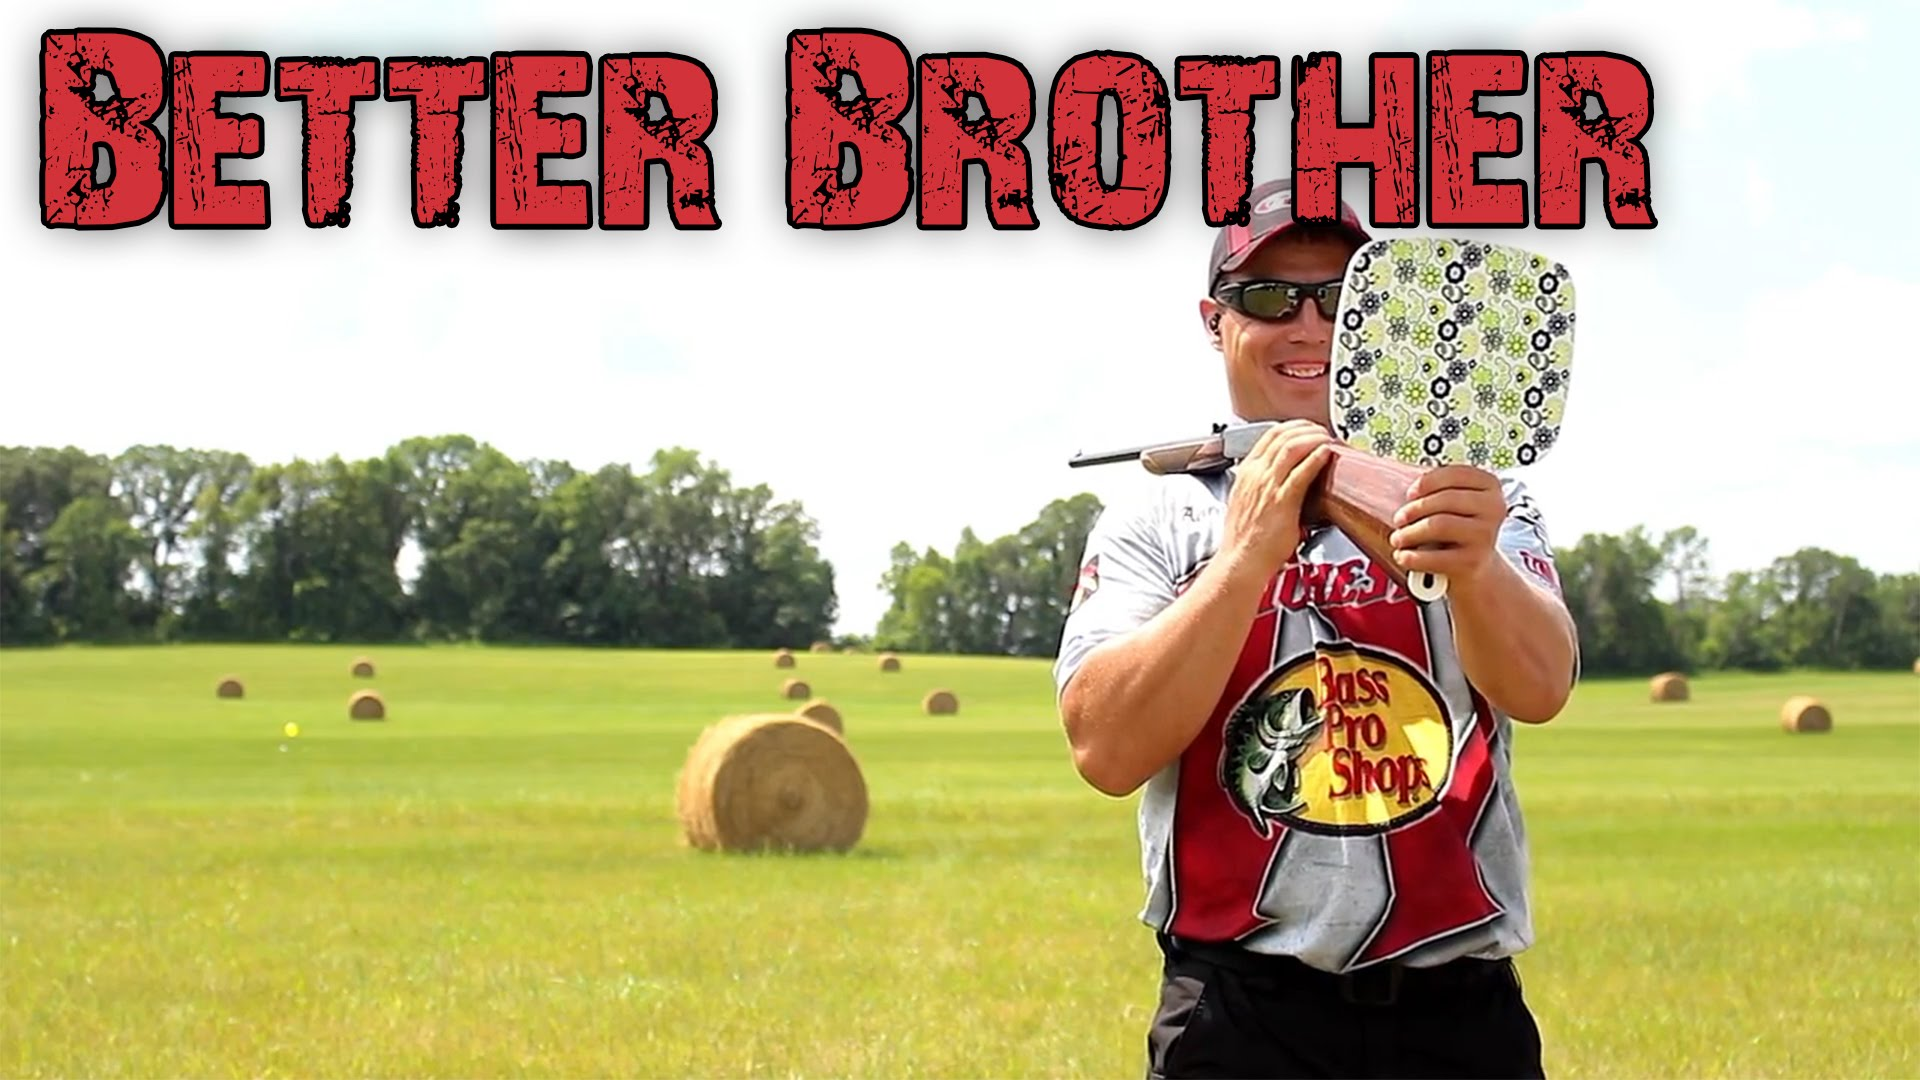 100 yard Annie Oakley Style Challenge | Gould Brothers